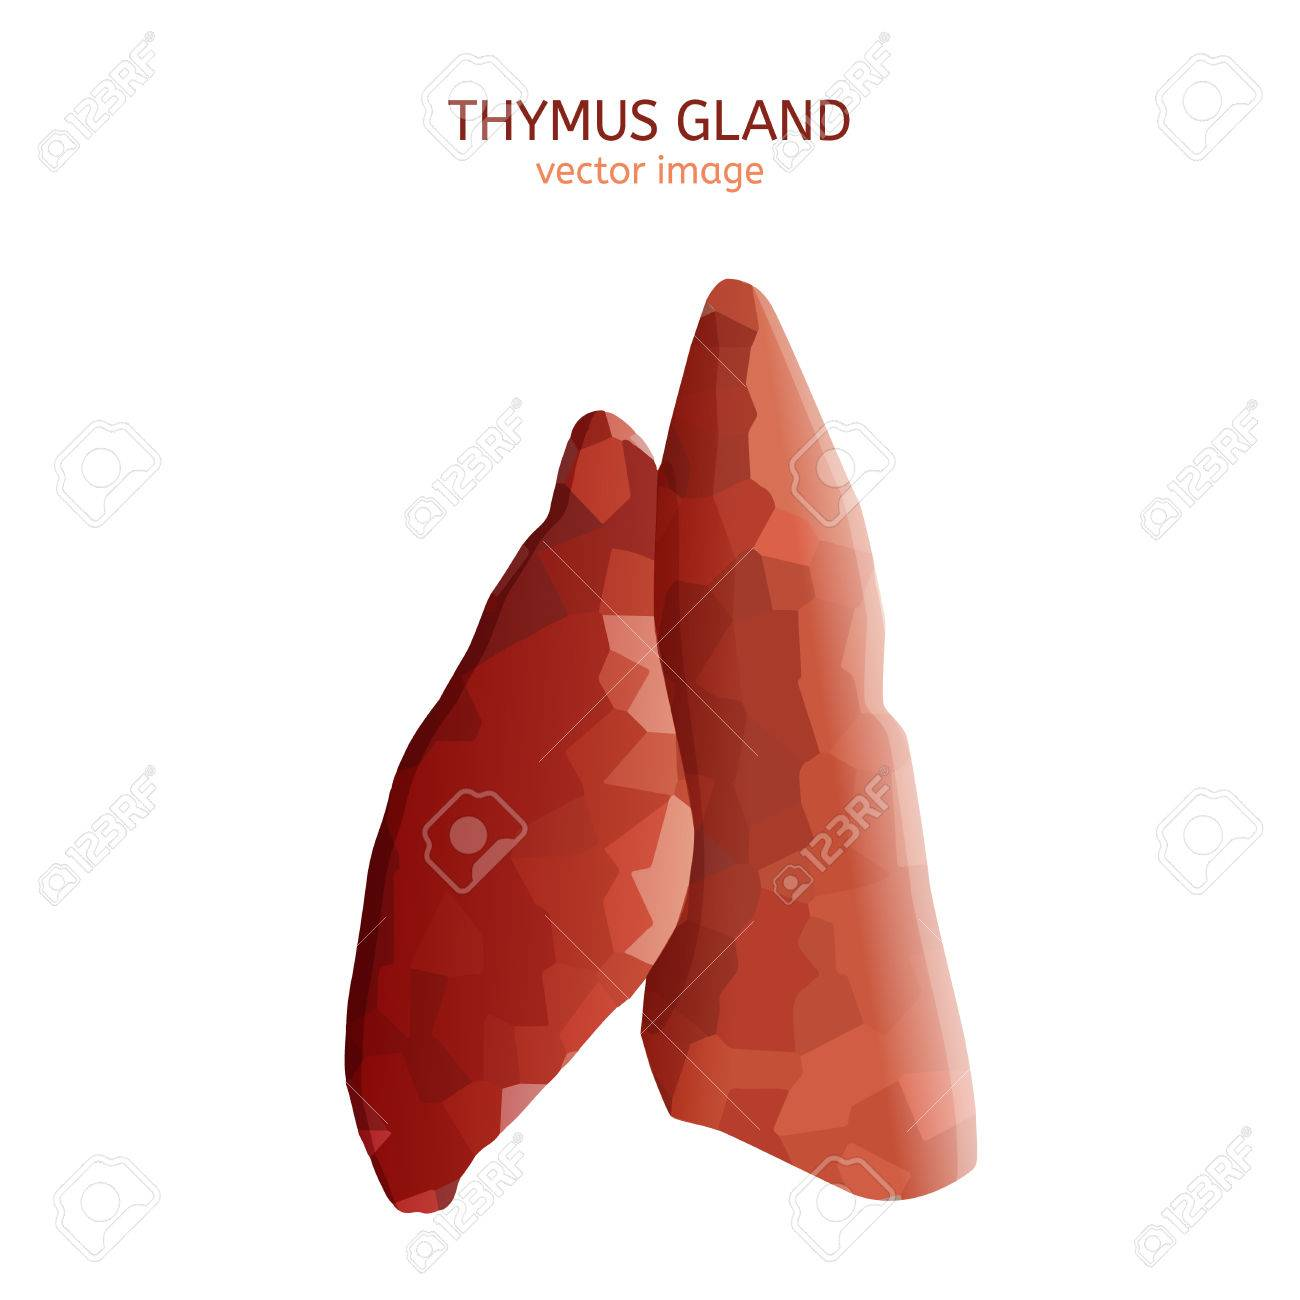 Thymus Gland Image Stock Photo Picture And Royalty Free Image